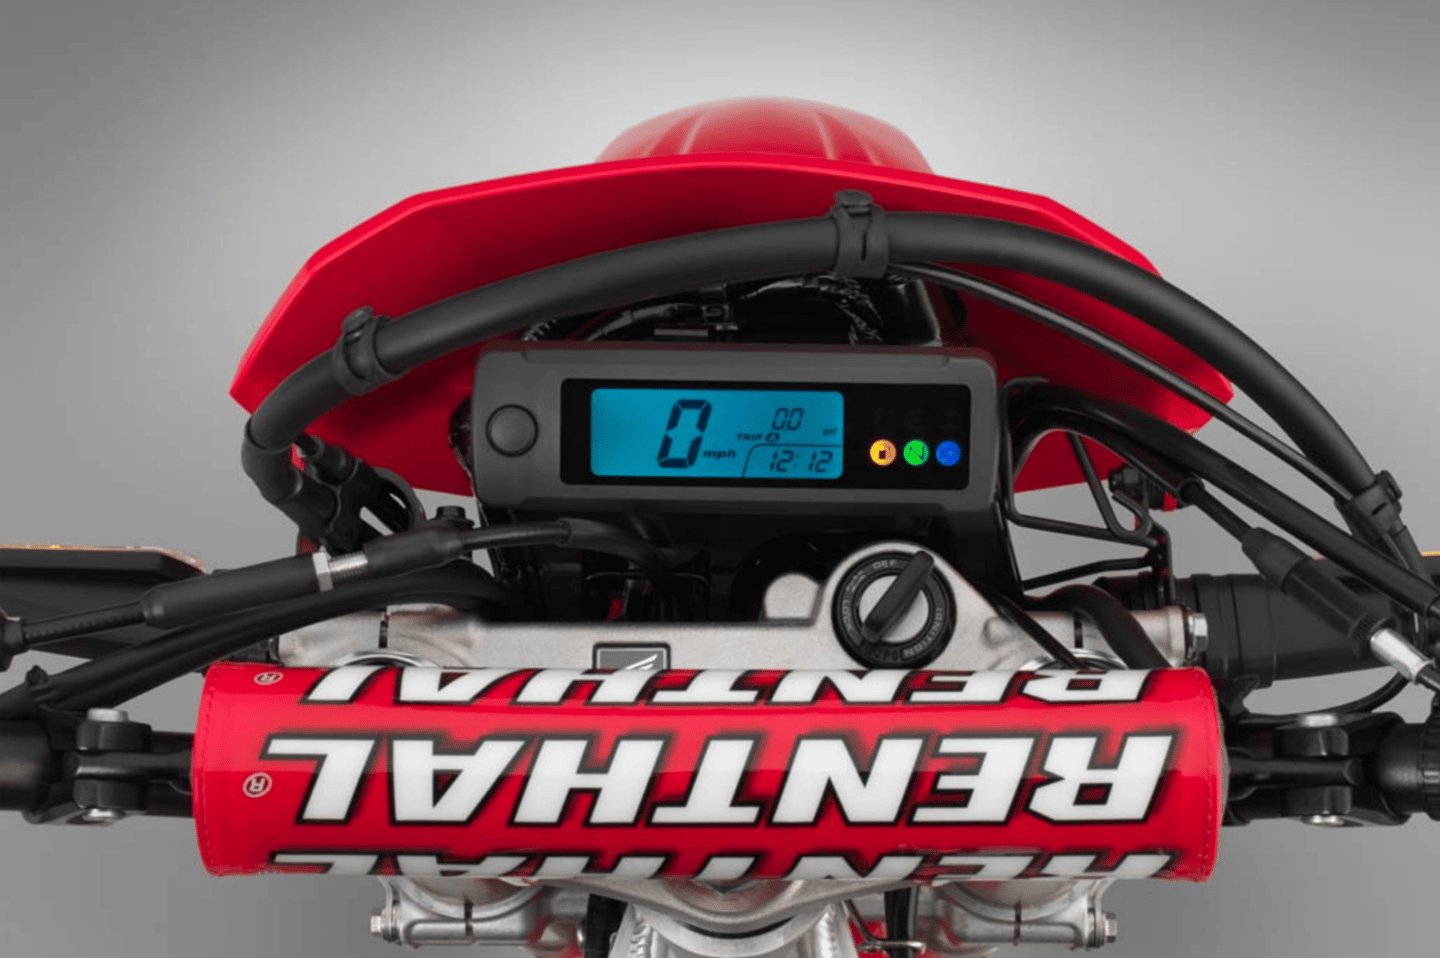 2019 Honda CRF450L: simple dash and keyed ignition with steering lock